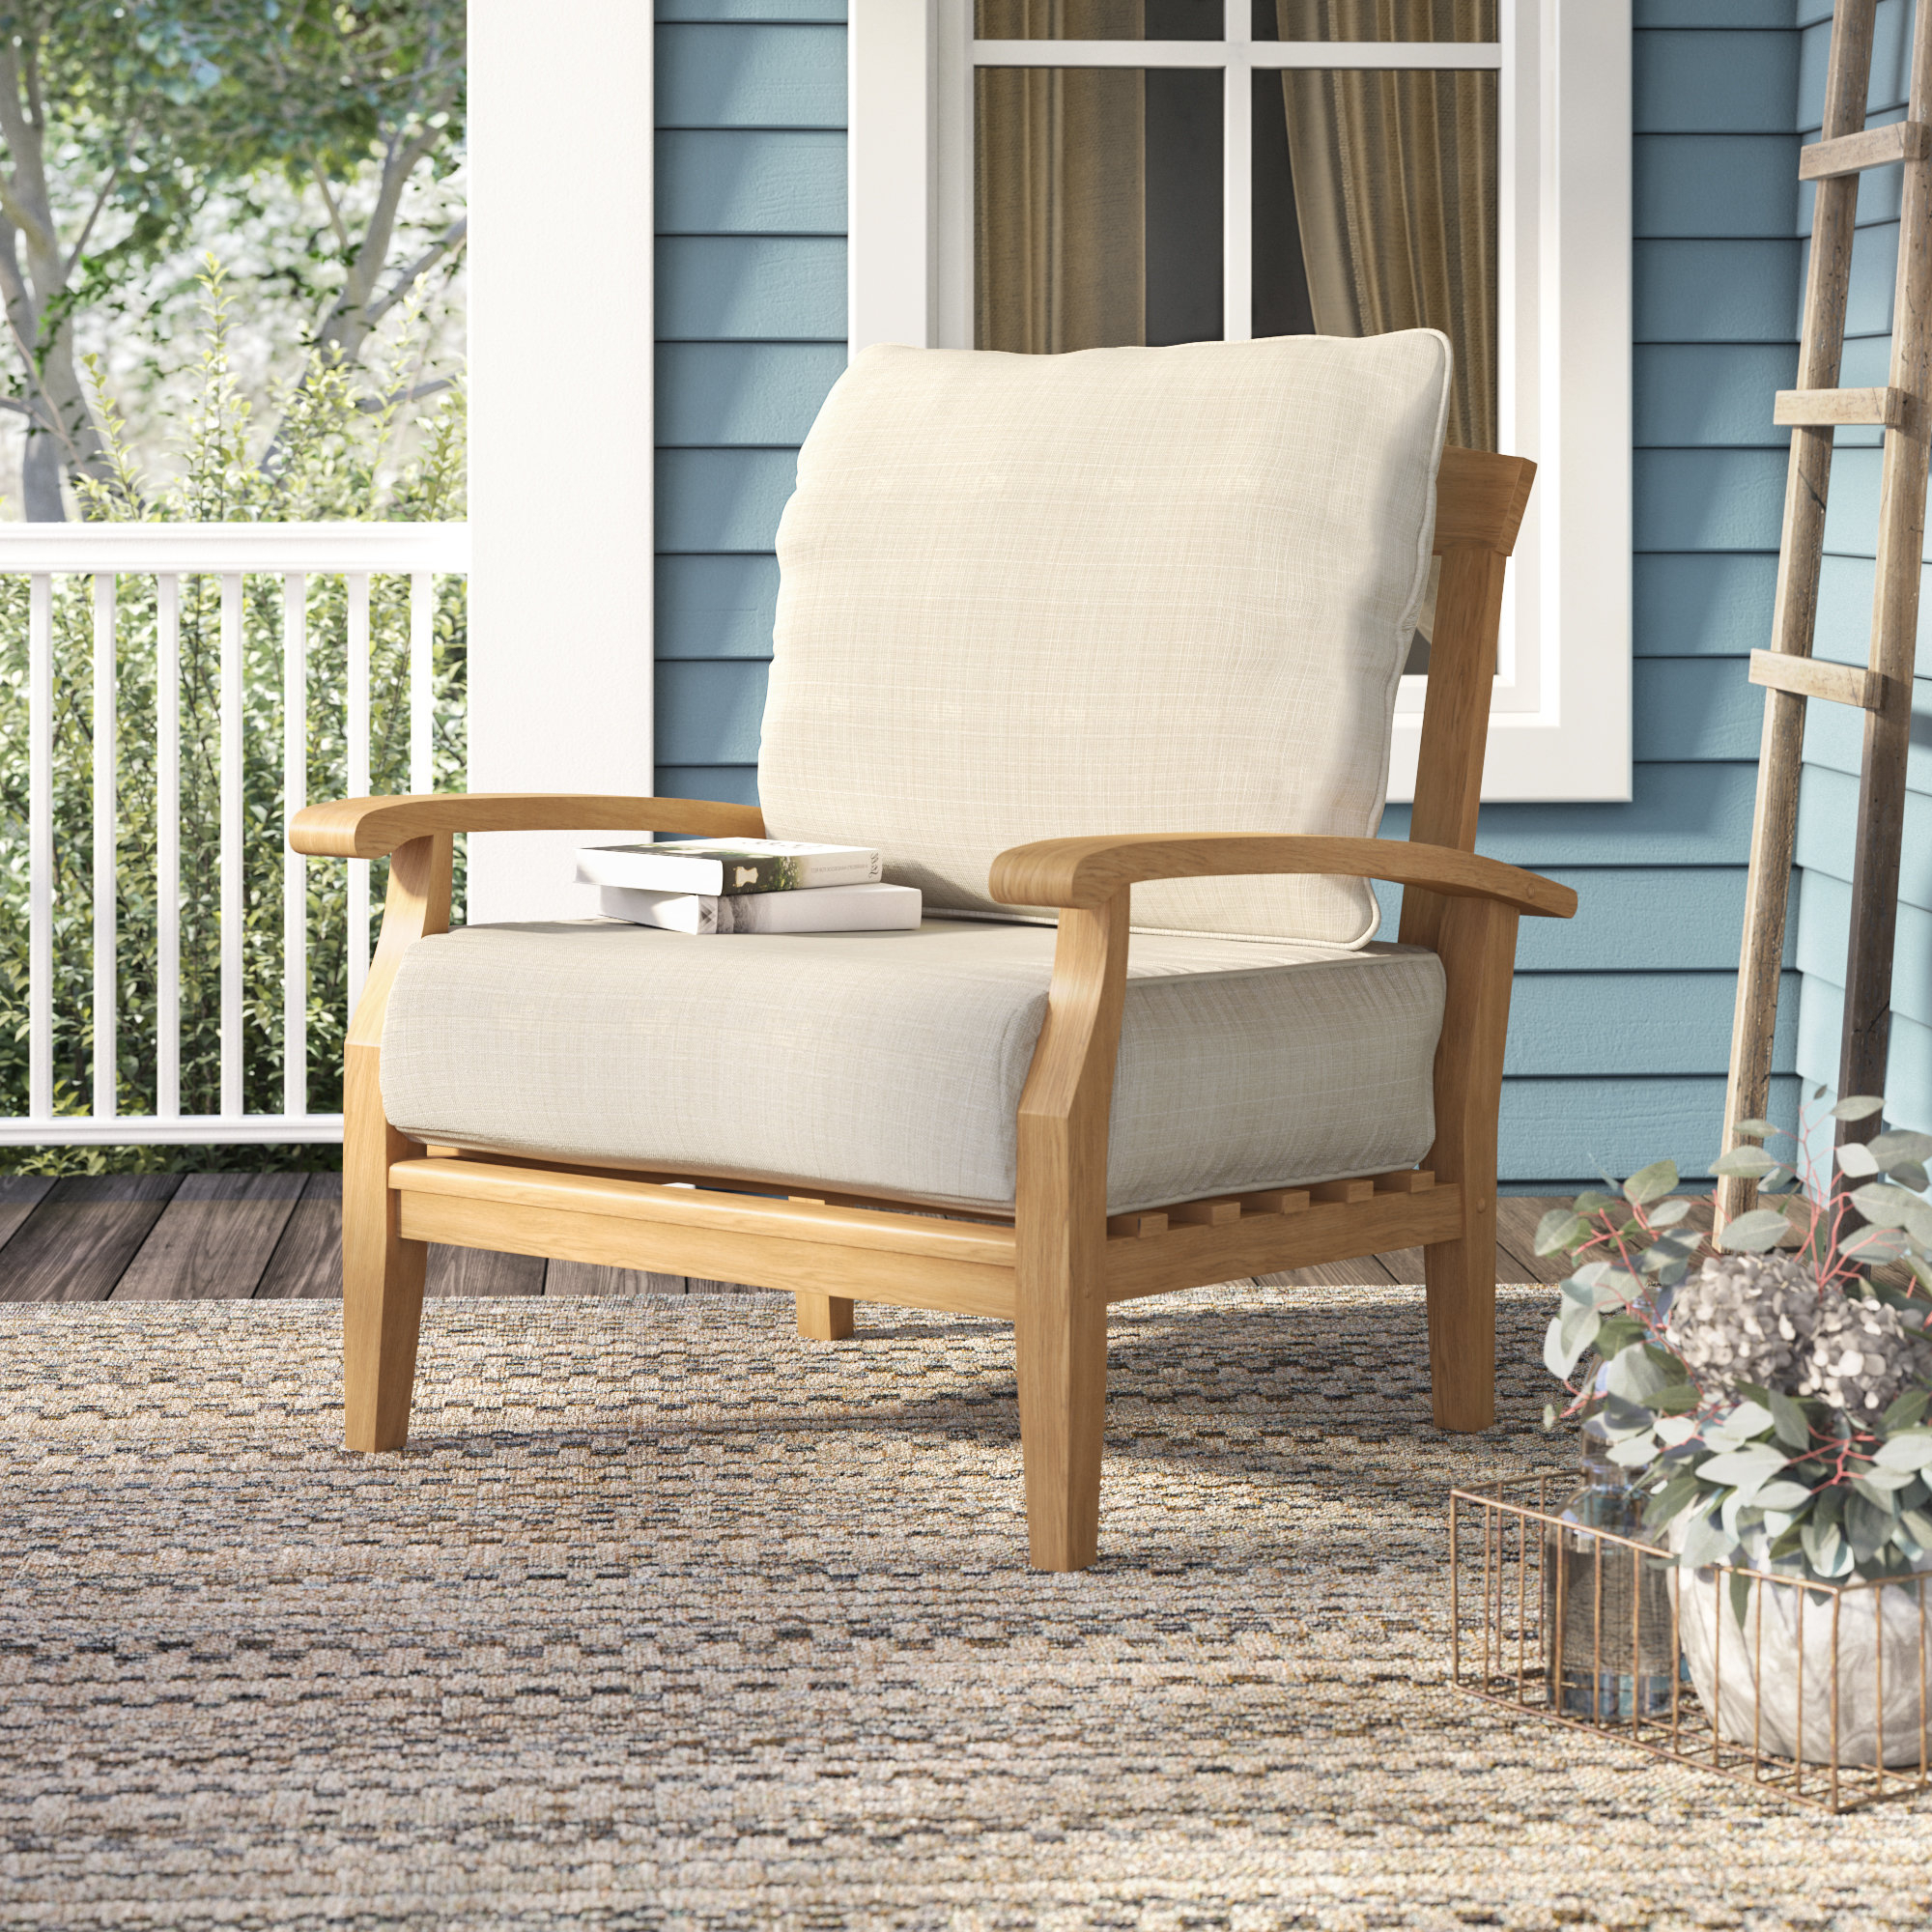 Summerton Teak Patio Chair With Cushions Throughout Famous Summerton Teak Patio Sofas With Cushions (View 6 of 20)